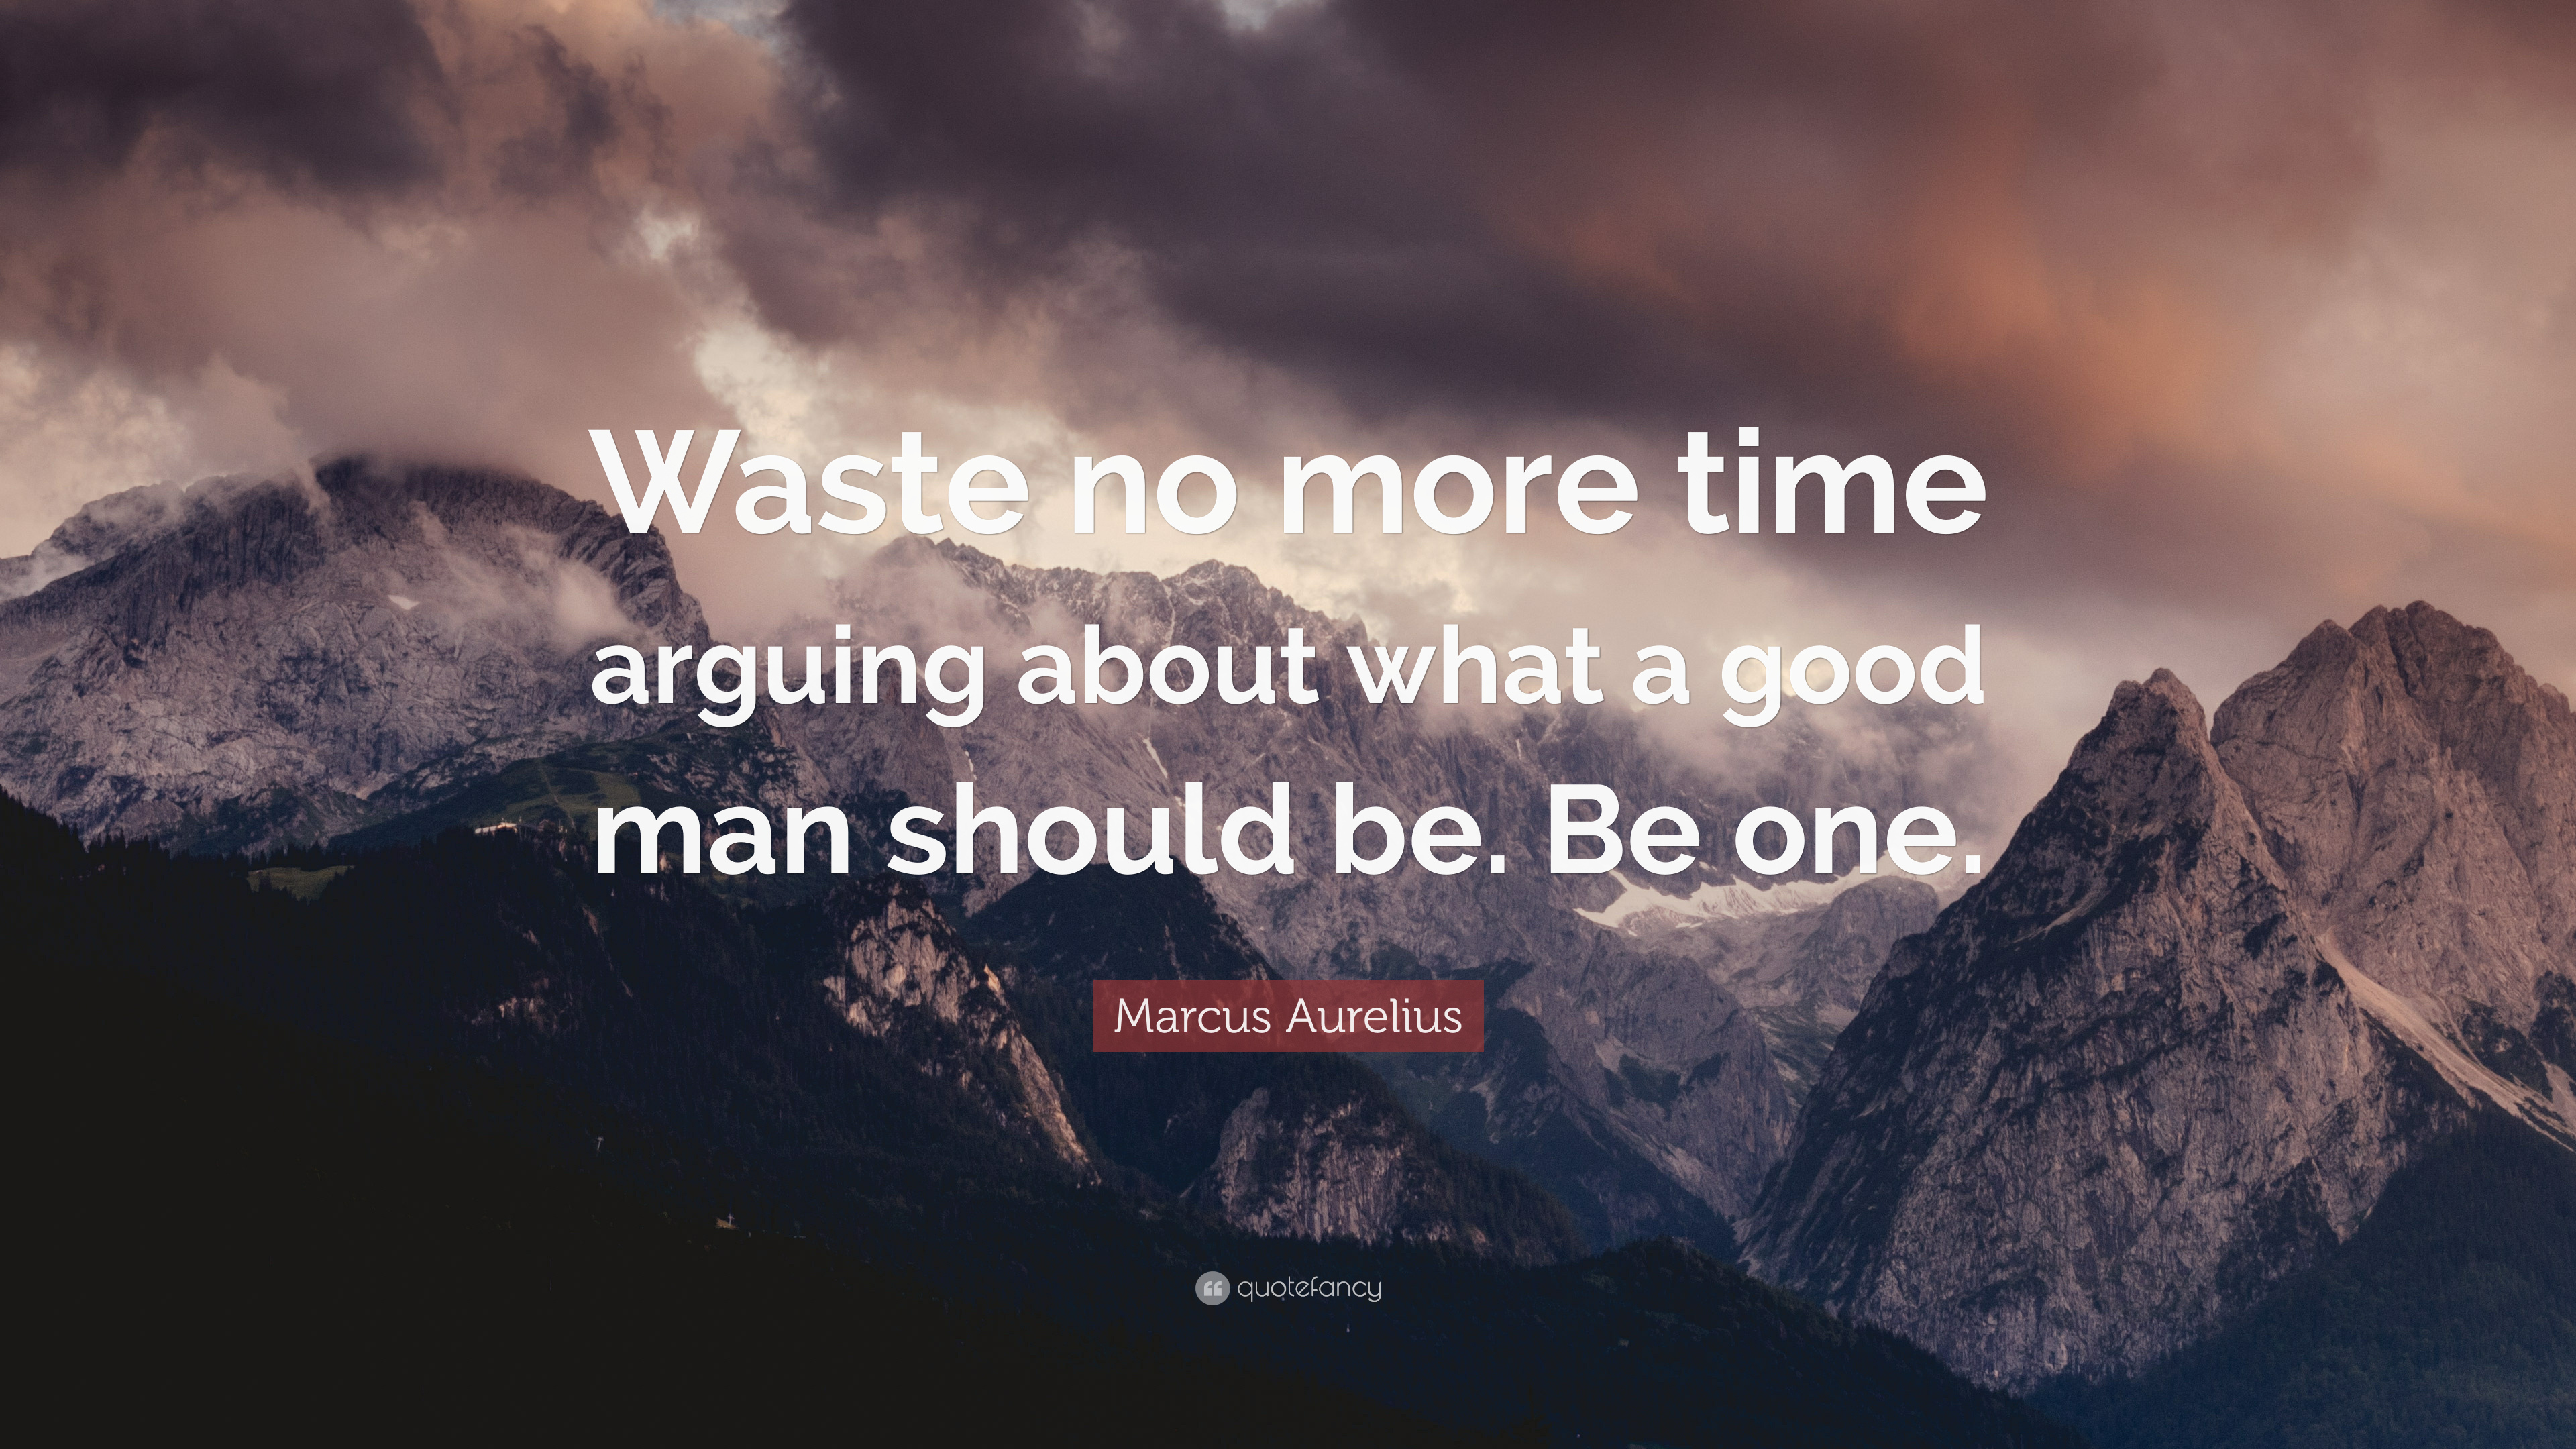 One More Arguing No Good Be Aurelius Man Should Be About What Marcus Waste Time